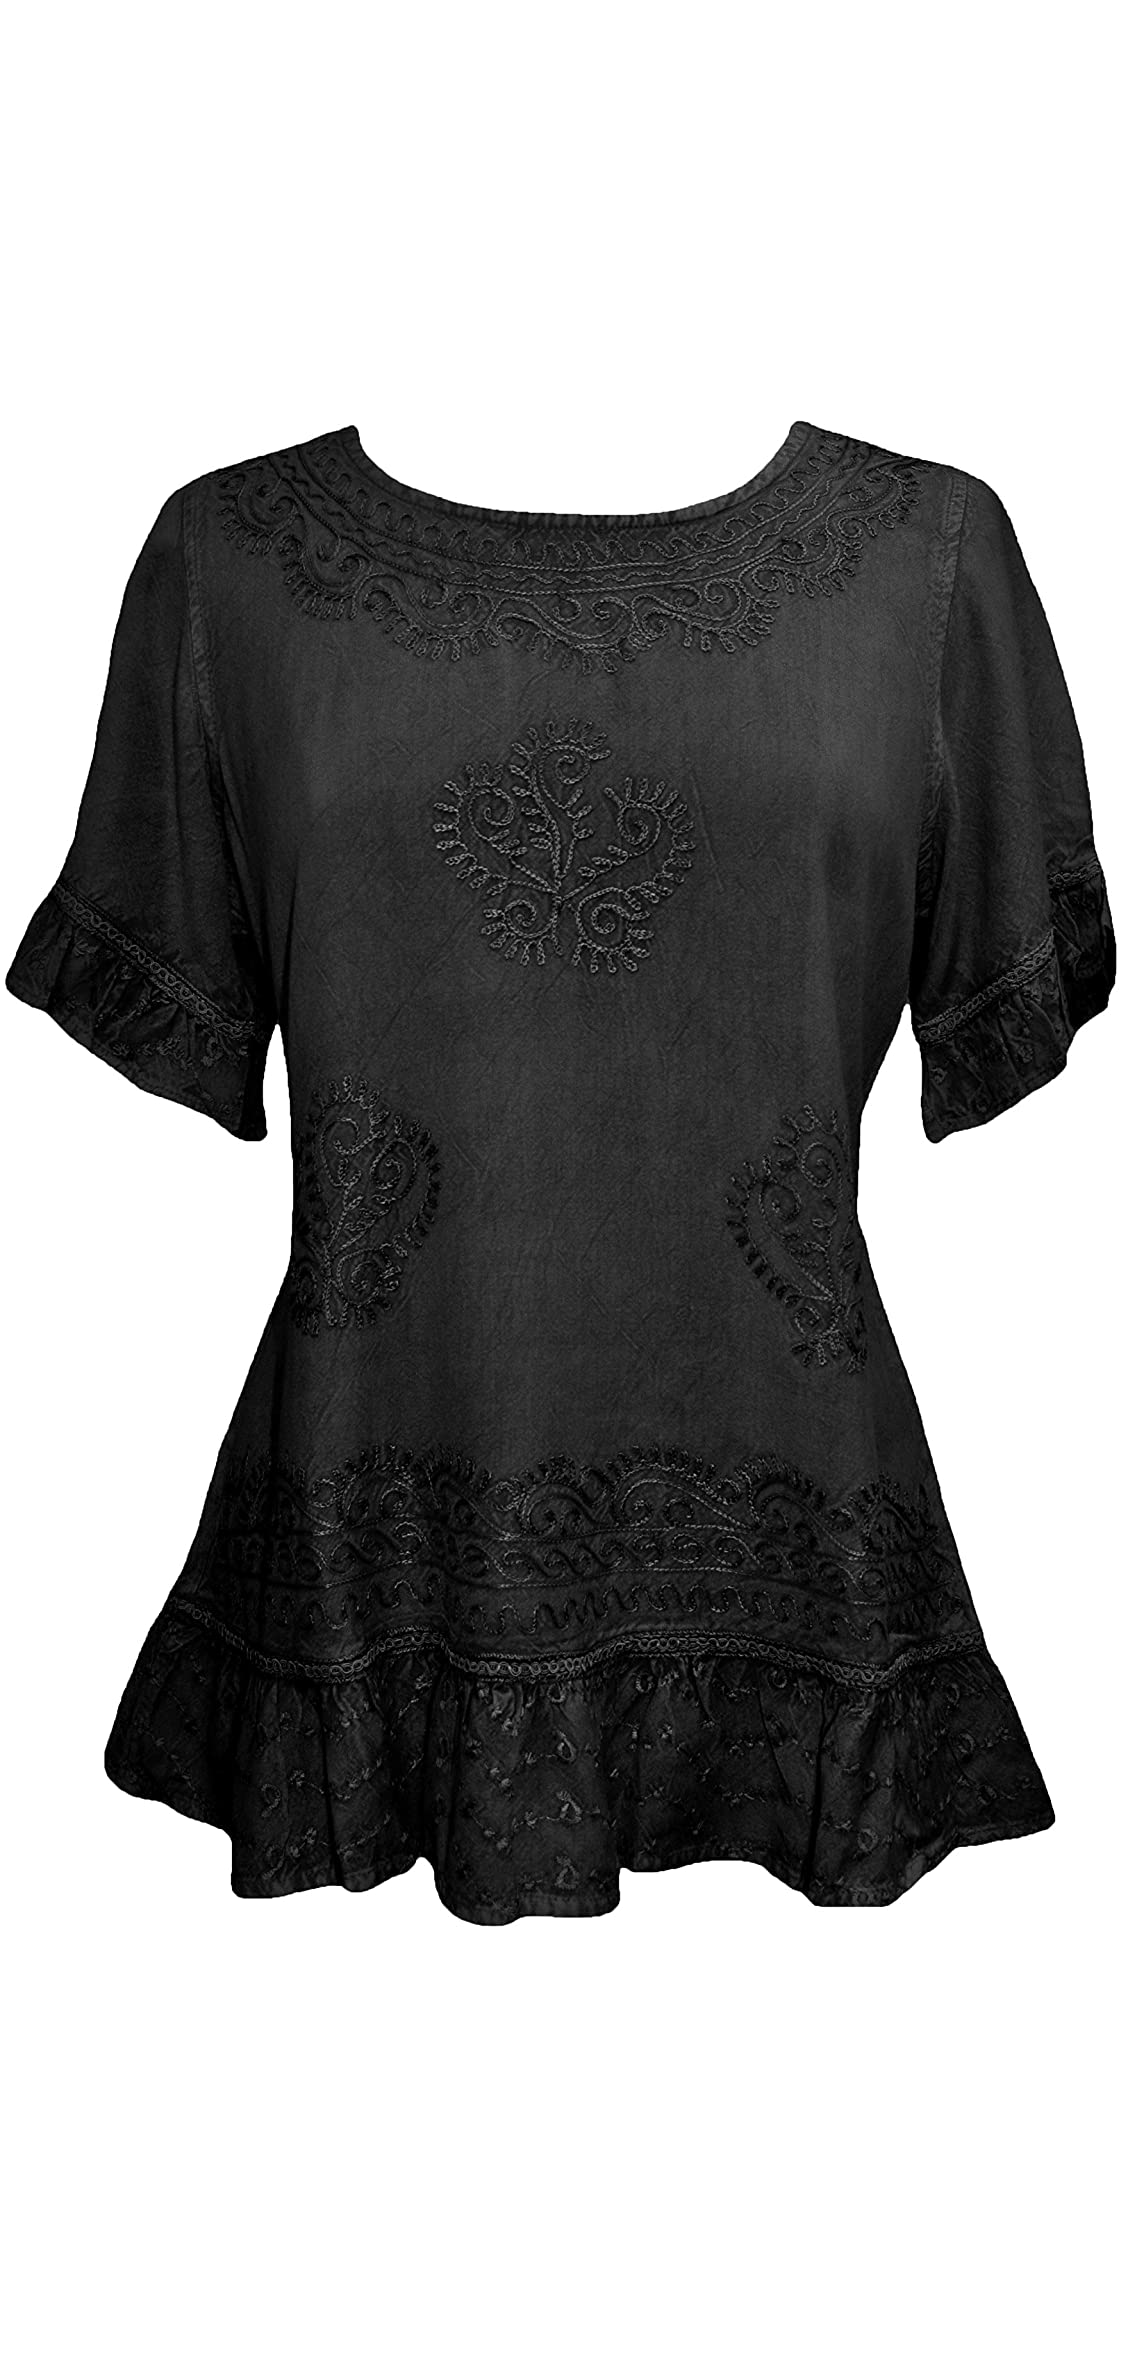 Women's Medieval Bohemian Embroidered Short Sleeve